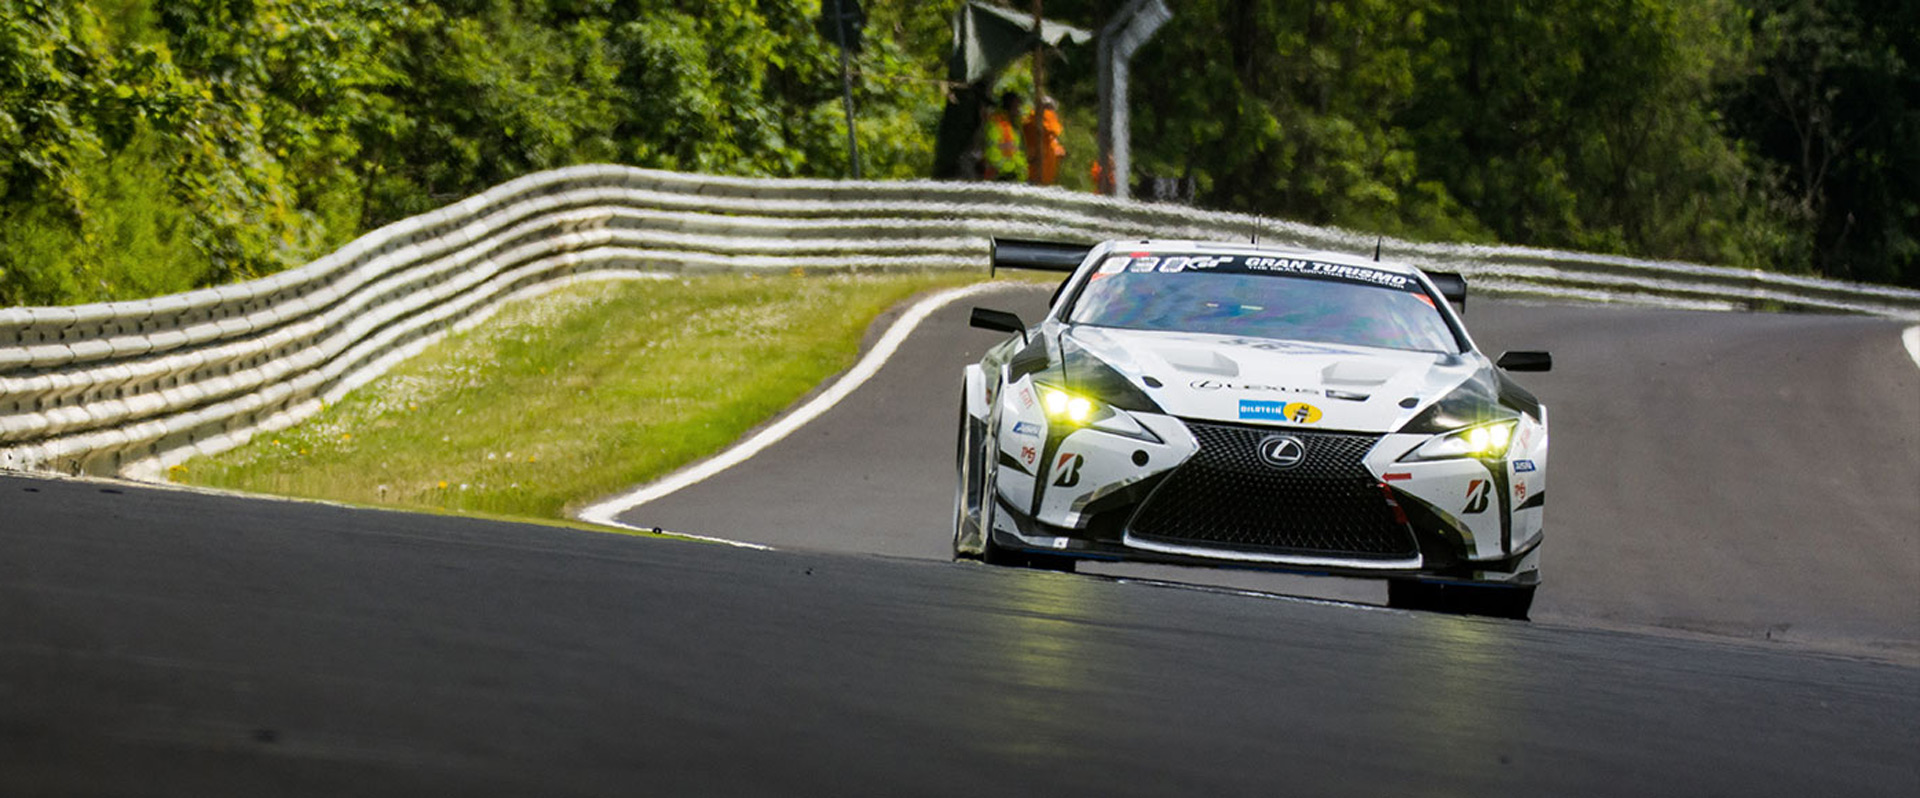 Lexus won't race new twin-turbo V-8 in 2020 24 Hours of Nürburgring